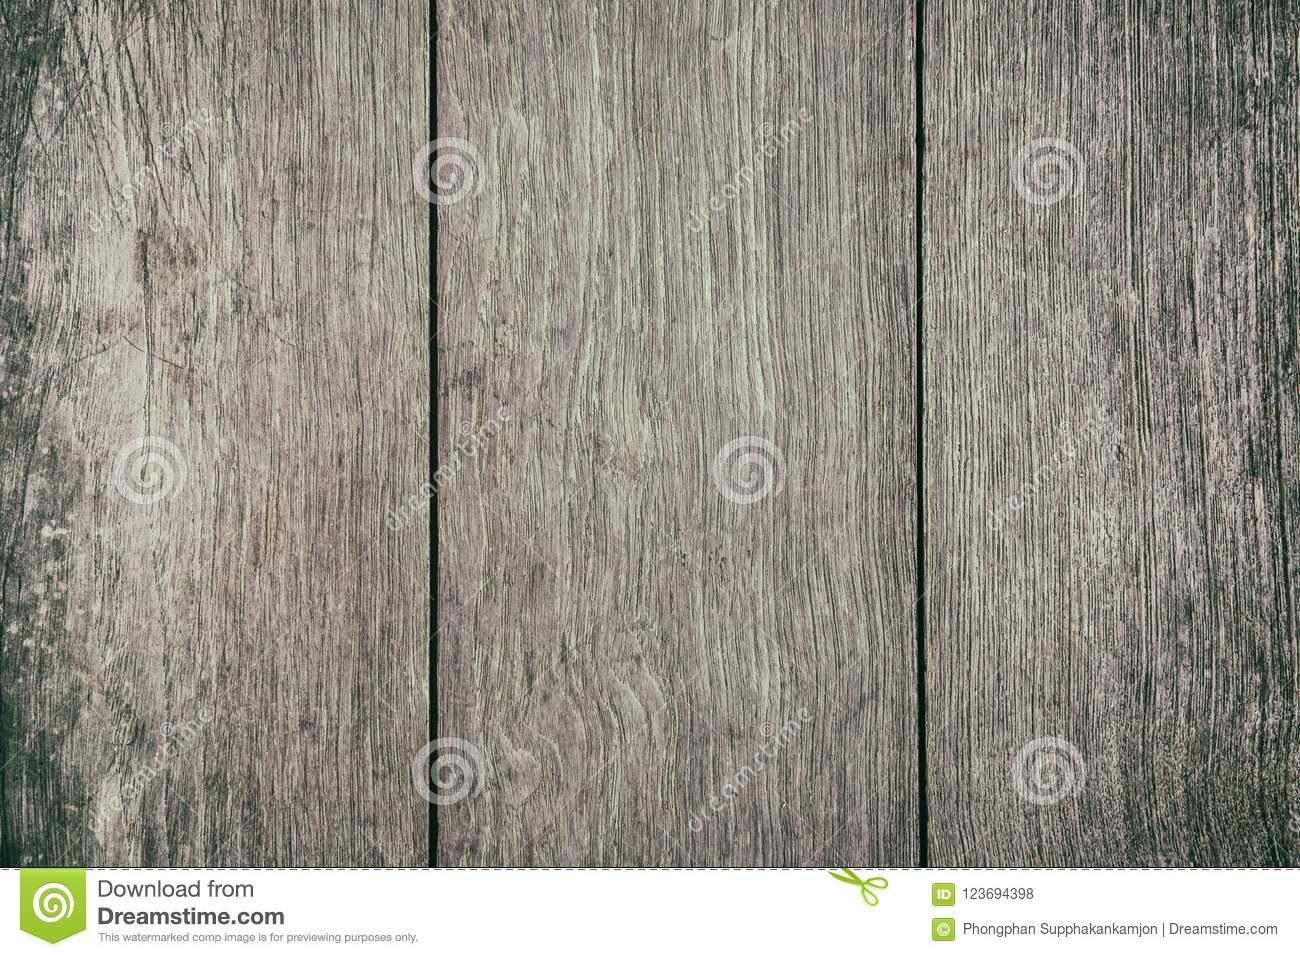 Close Up Rustic Wood Table With Grain Texture In Vintage Style